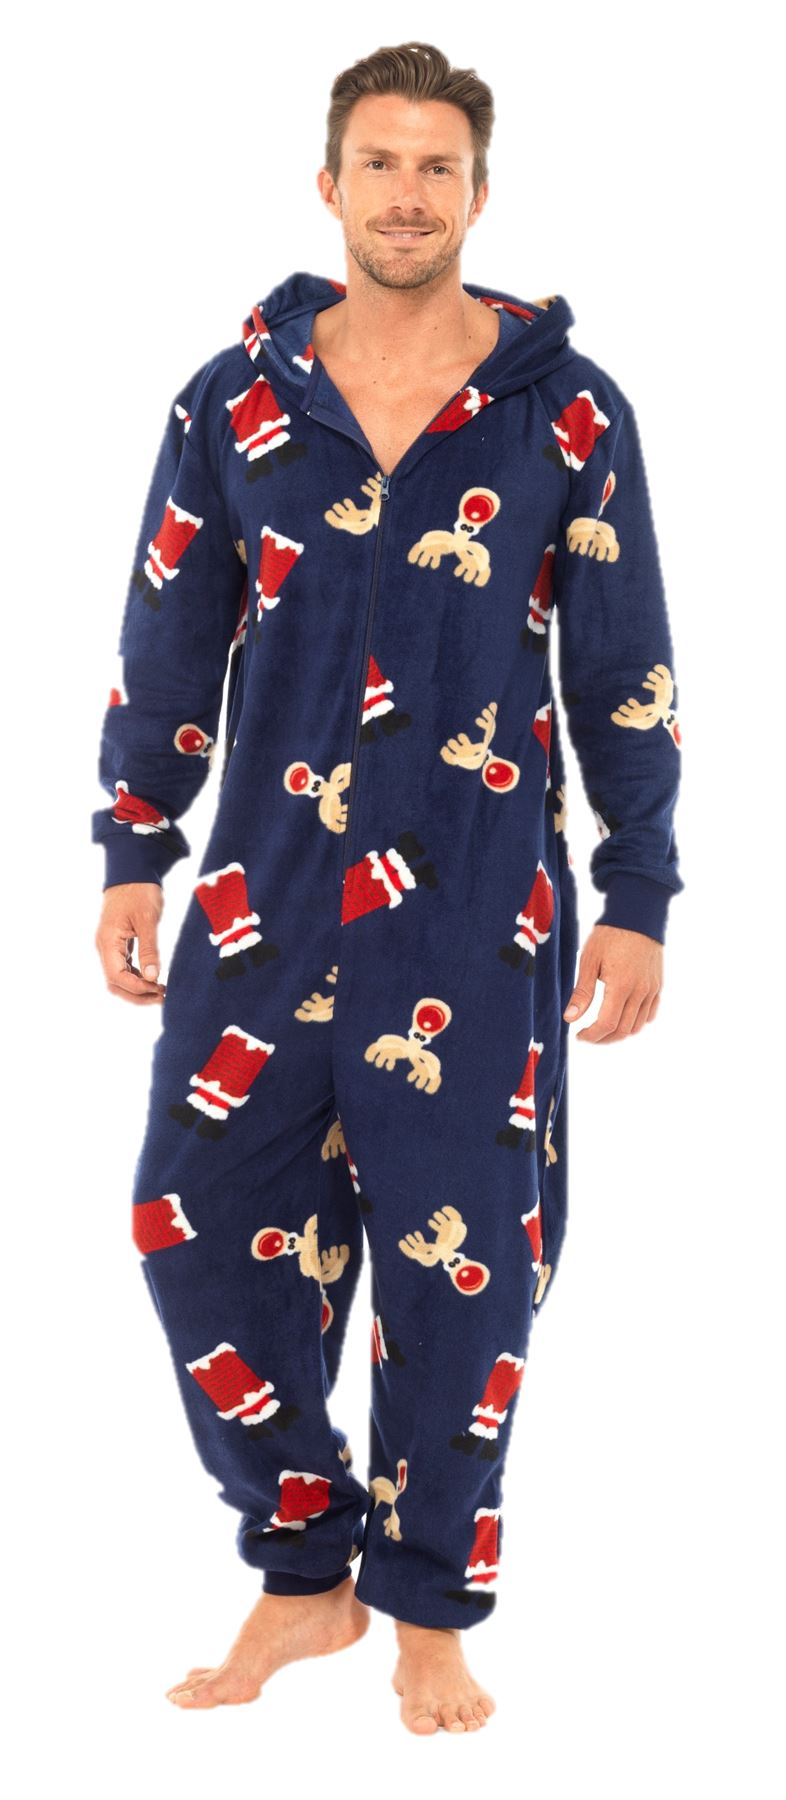 That's the perfect time to wear your loudest, proudest Christmas Pajamas. Our extensive collection of Christmas Pajamas in a wide variety of styles allow you to wear your passion around the house. Turn your interests, causes or fan favorites into a killer comfy pajama set.